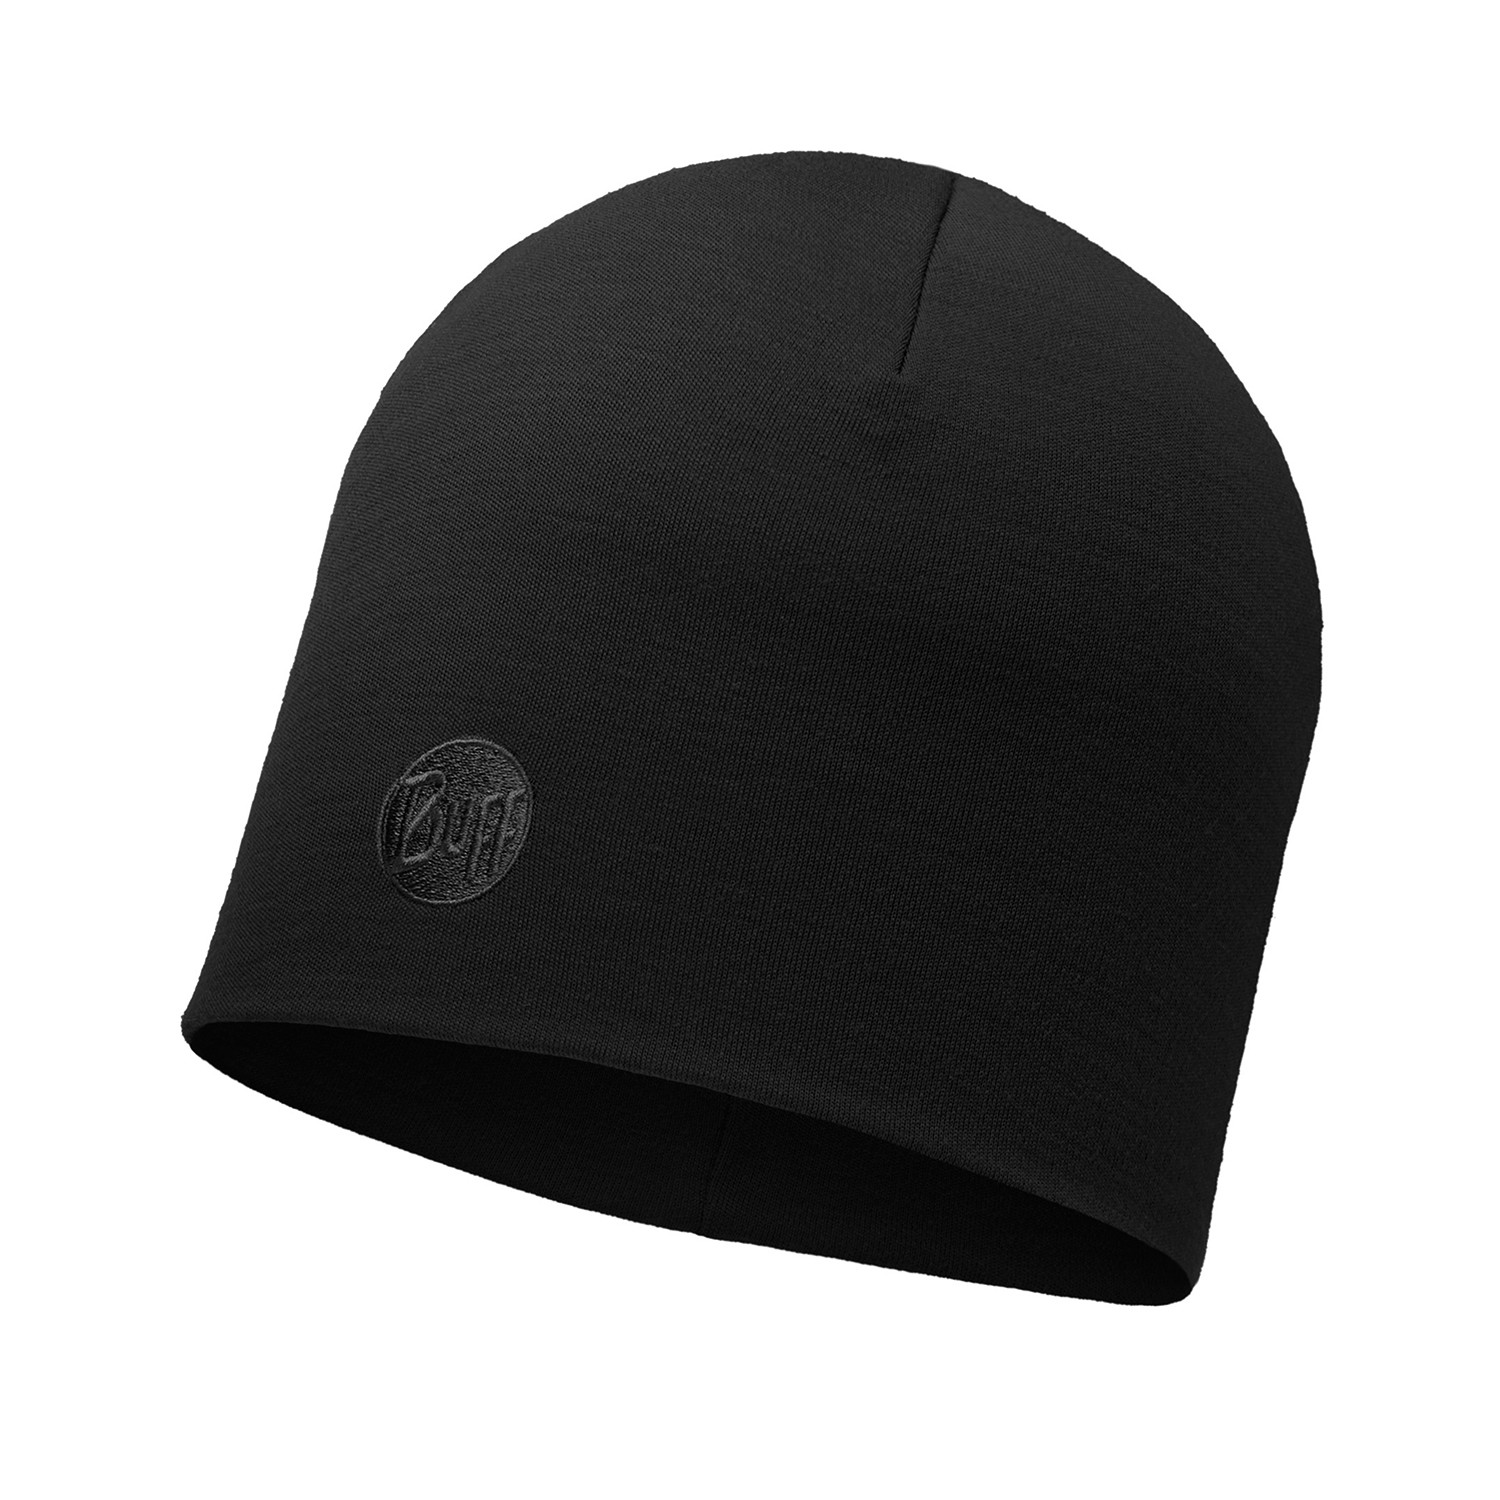 Buff Unisex Heavyweight Merino Wool Hat